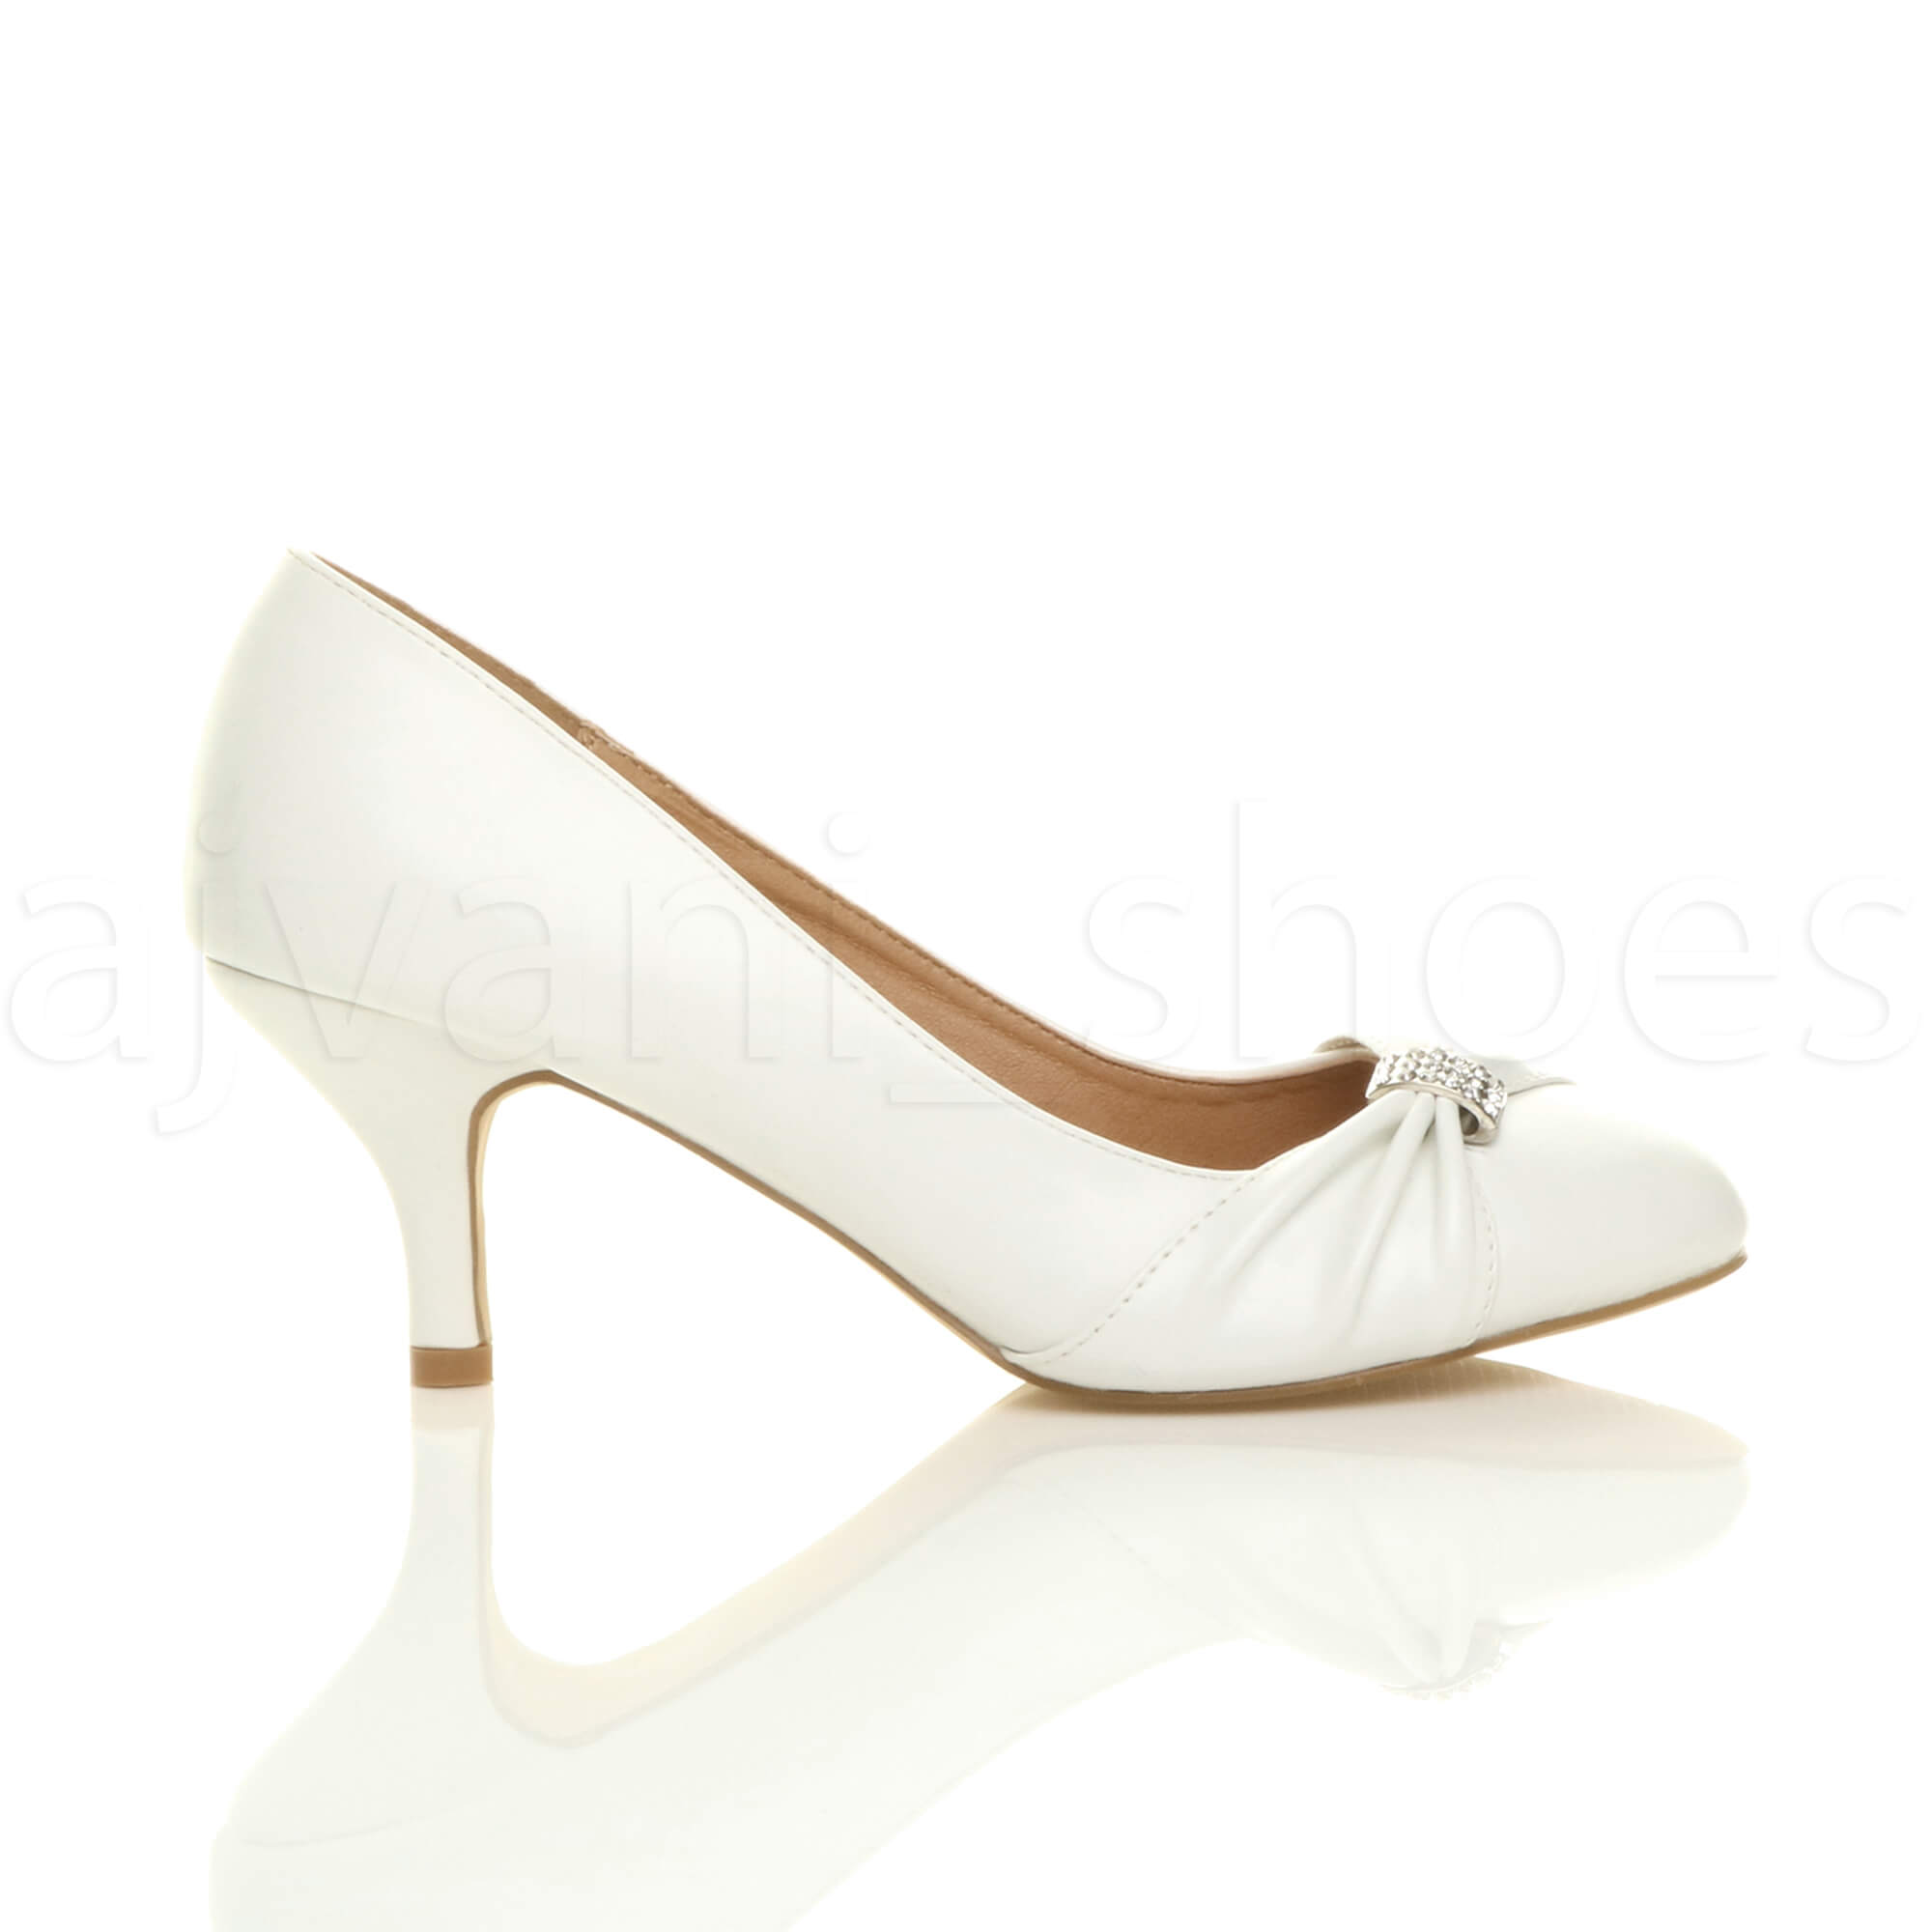 WOMENS-LADIES-MID-HEEL-RUCHED-DIAMANTE-WEDDING-PROM-EVENING-COURT-SHOES-SIZE thumbnail 99